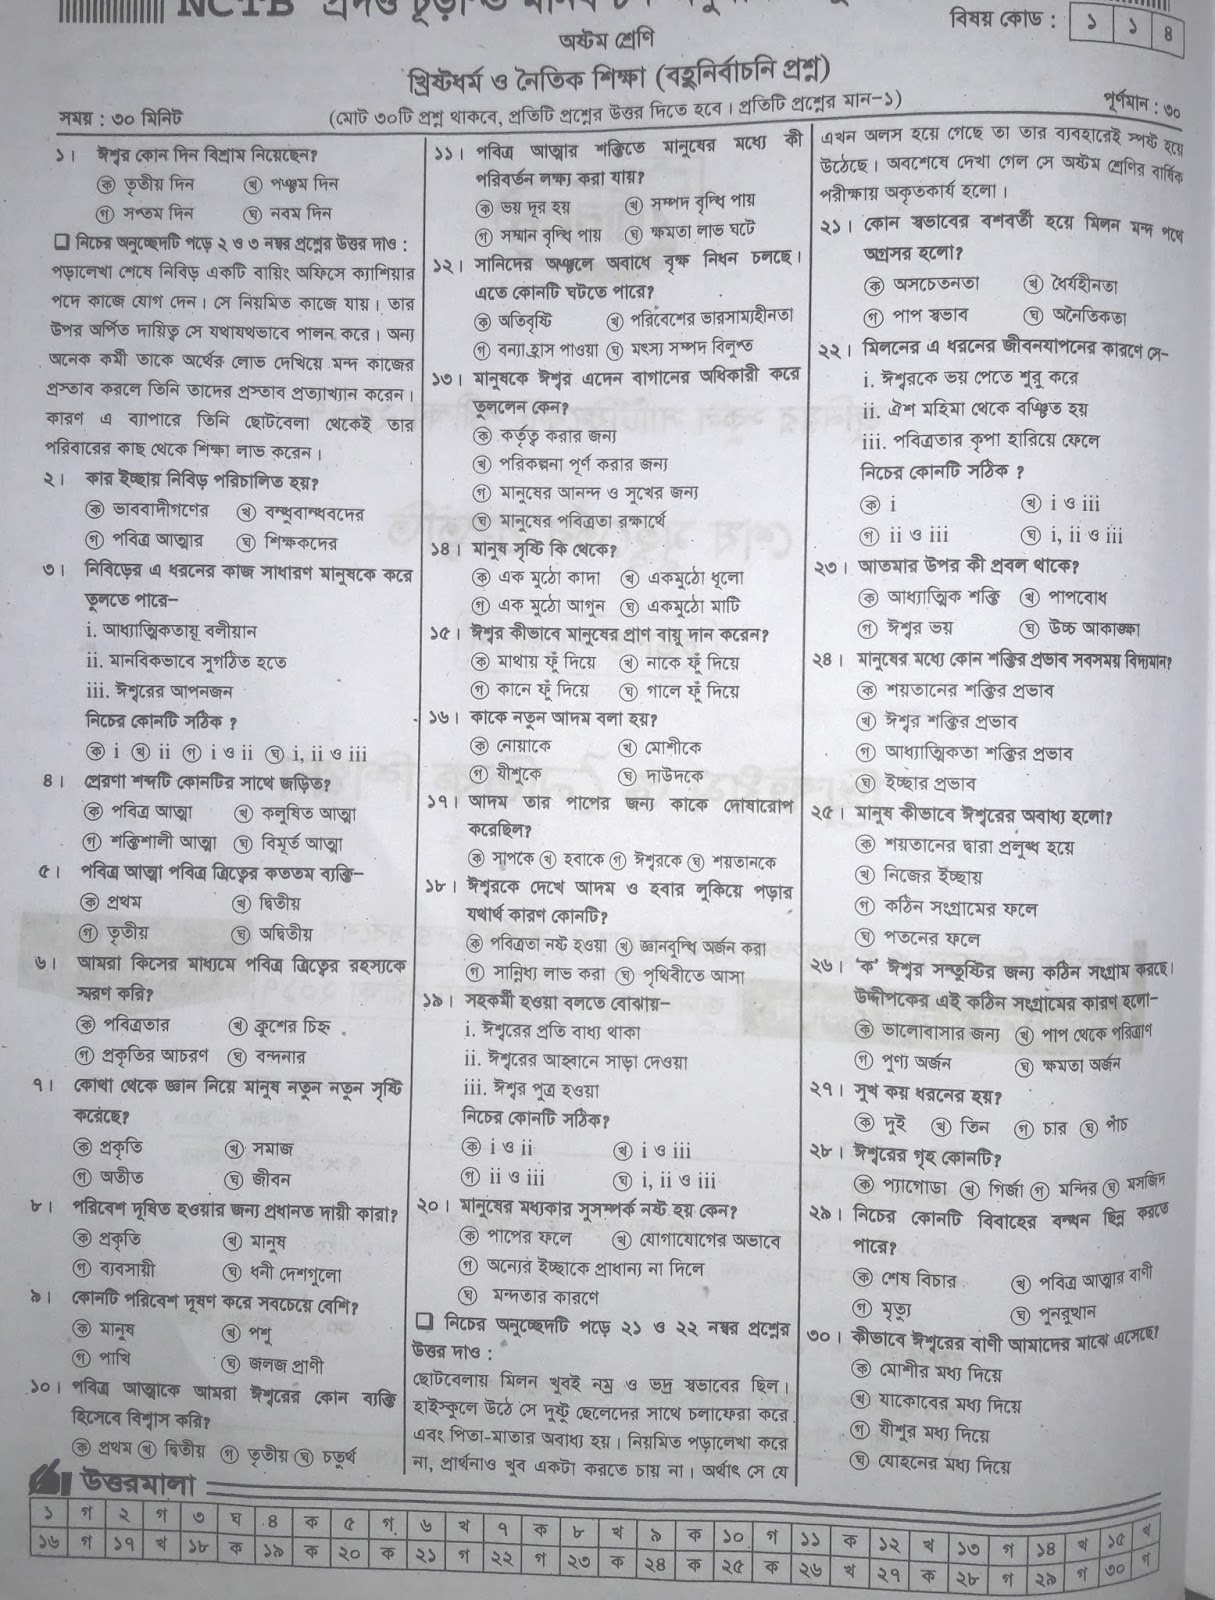 jsc Khristo Dhormo and Moral Education suggestion, exam question paper, model question, mcq question, question pattern, preparation for dhaka board, all boards